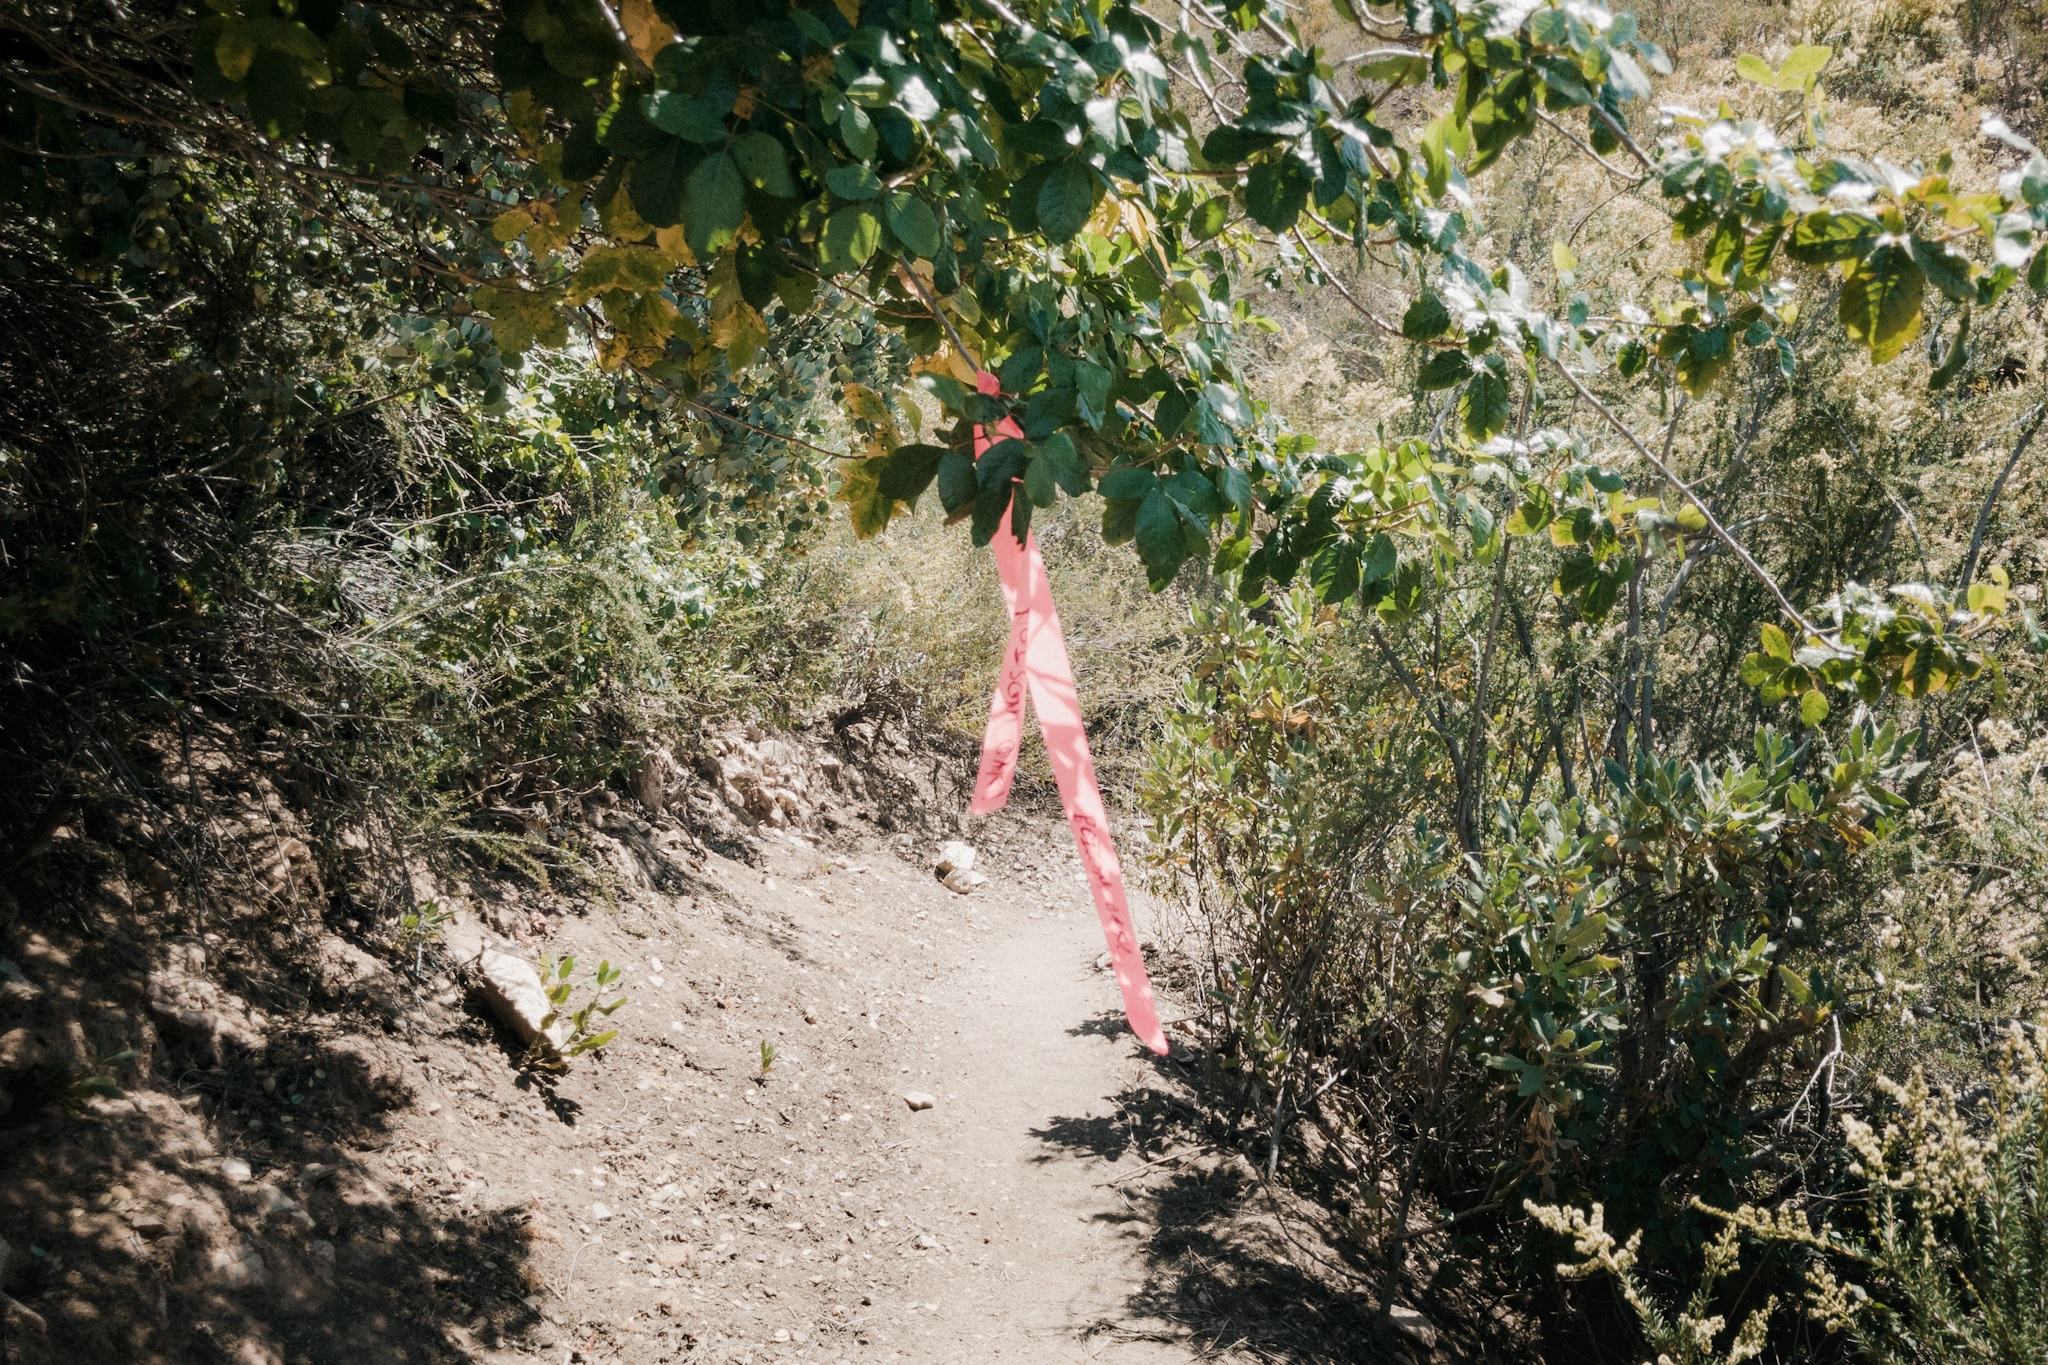 Warning about poison oak on trail.